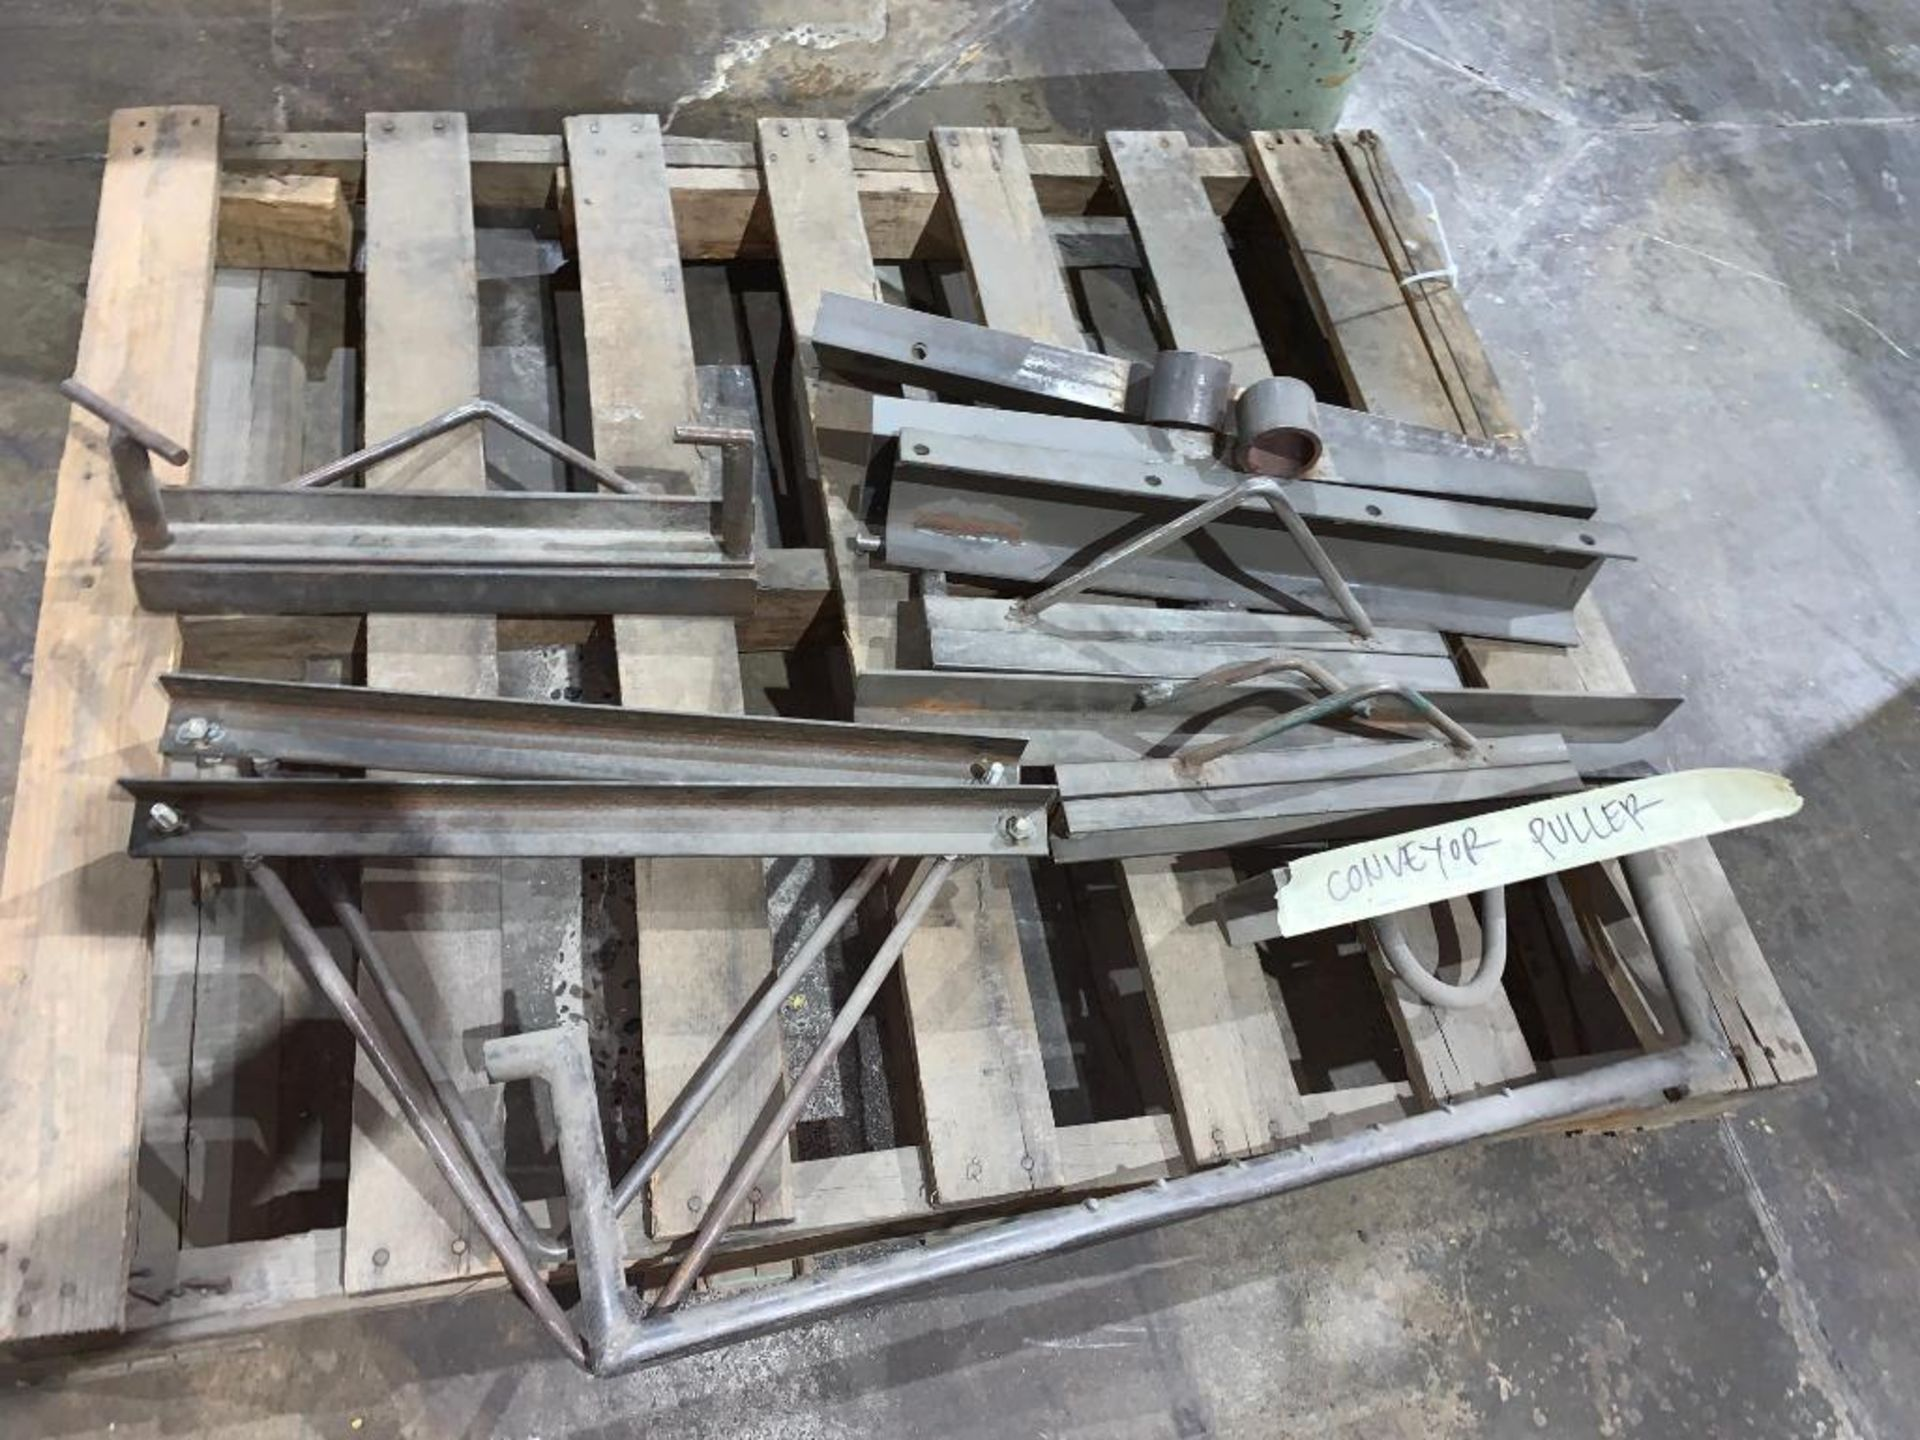 (3) pallets of miscellaneous parts - Image 12 of 12